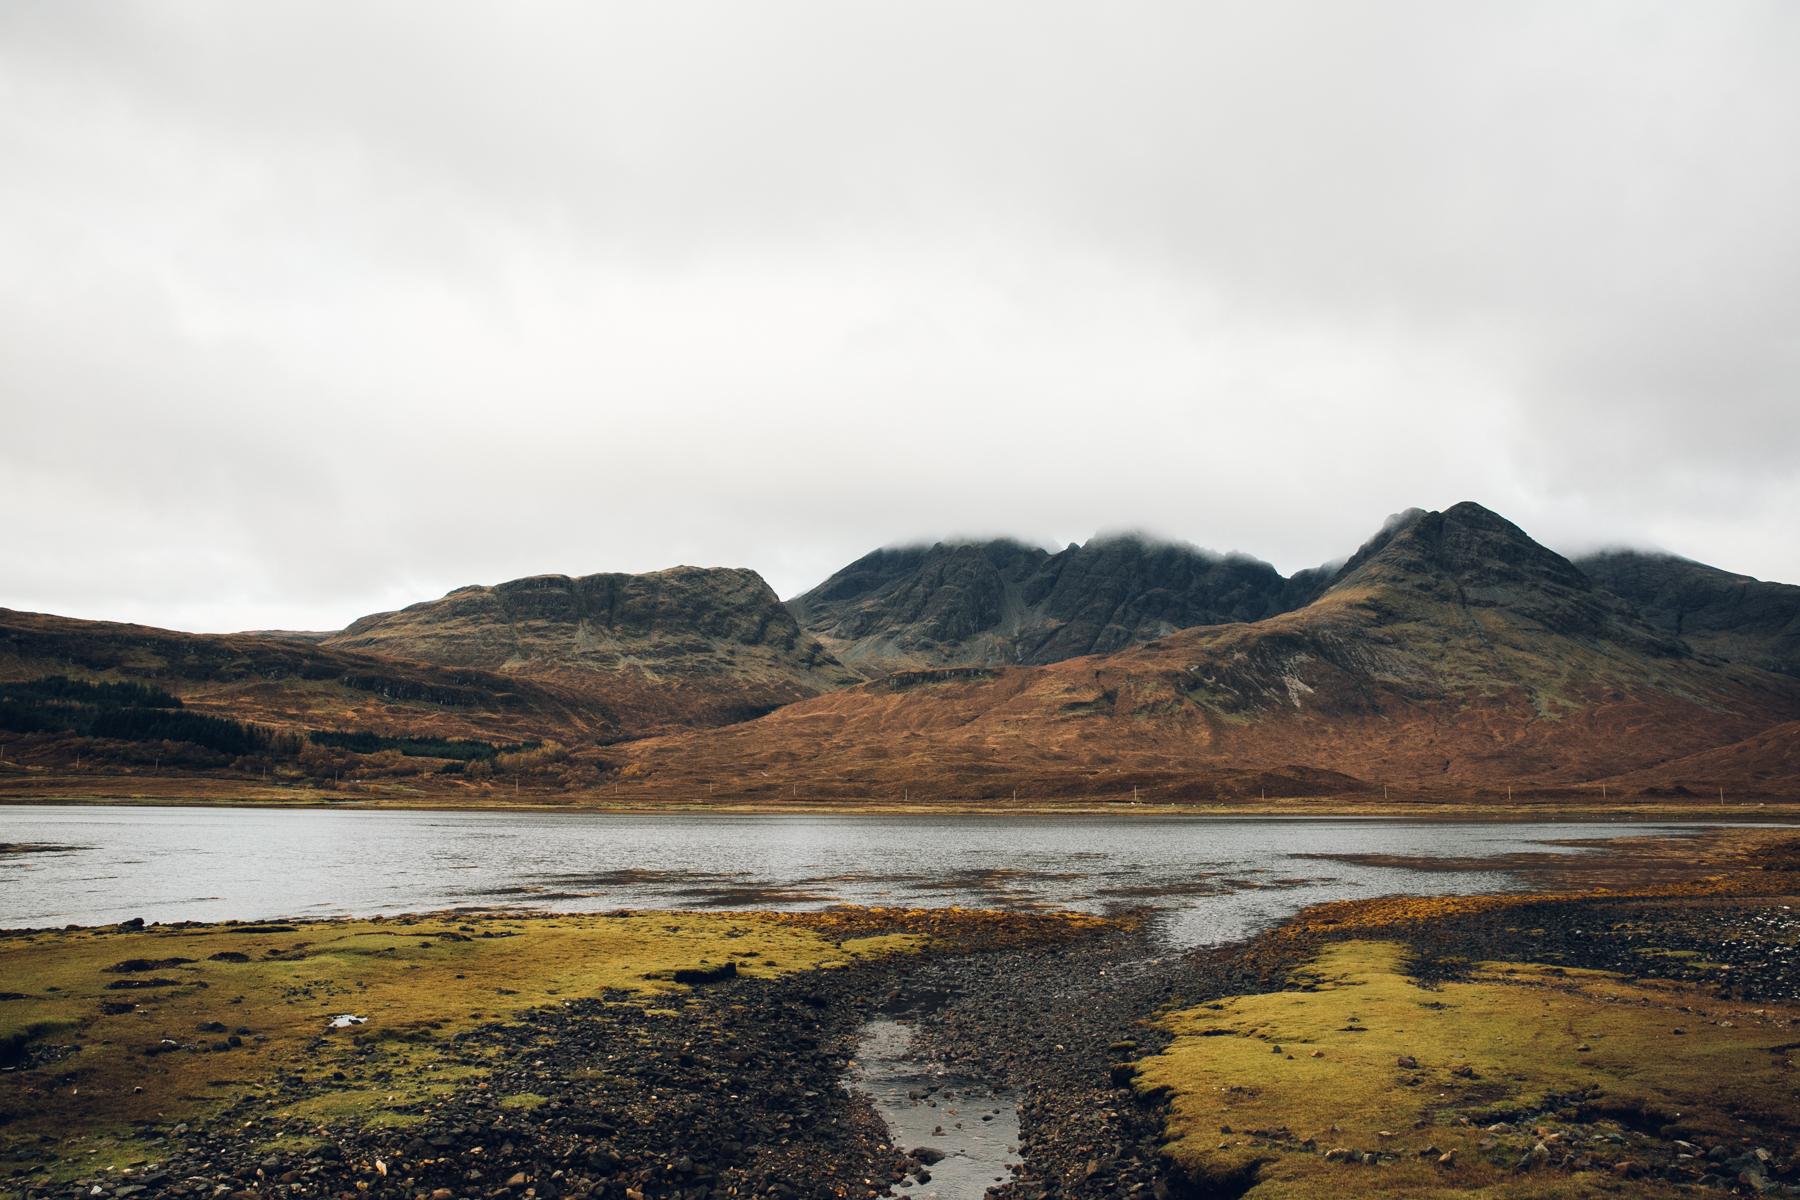 Misty mountains across the water on the Isle of Skye in Scotland.